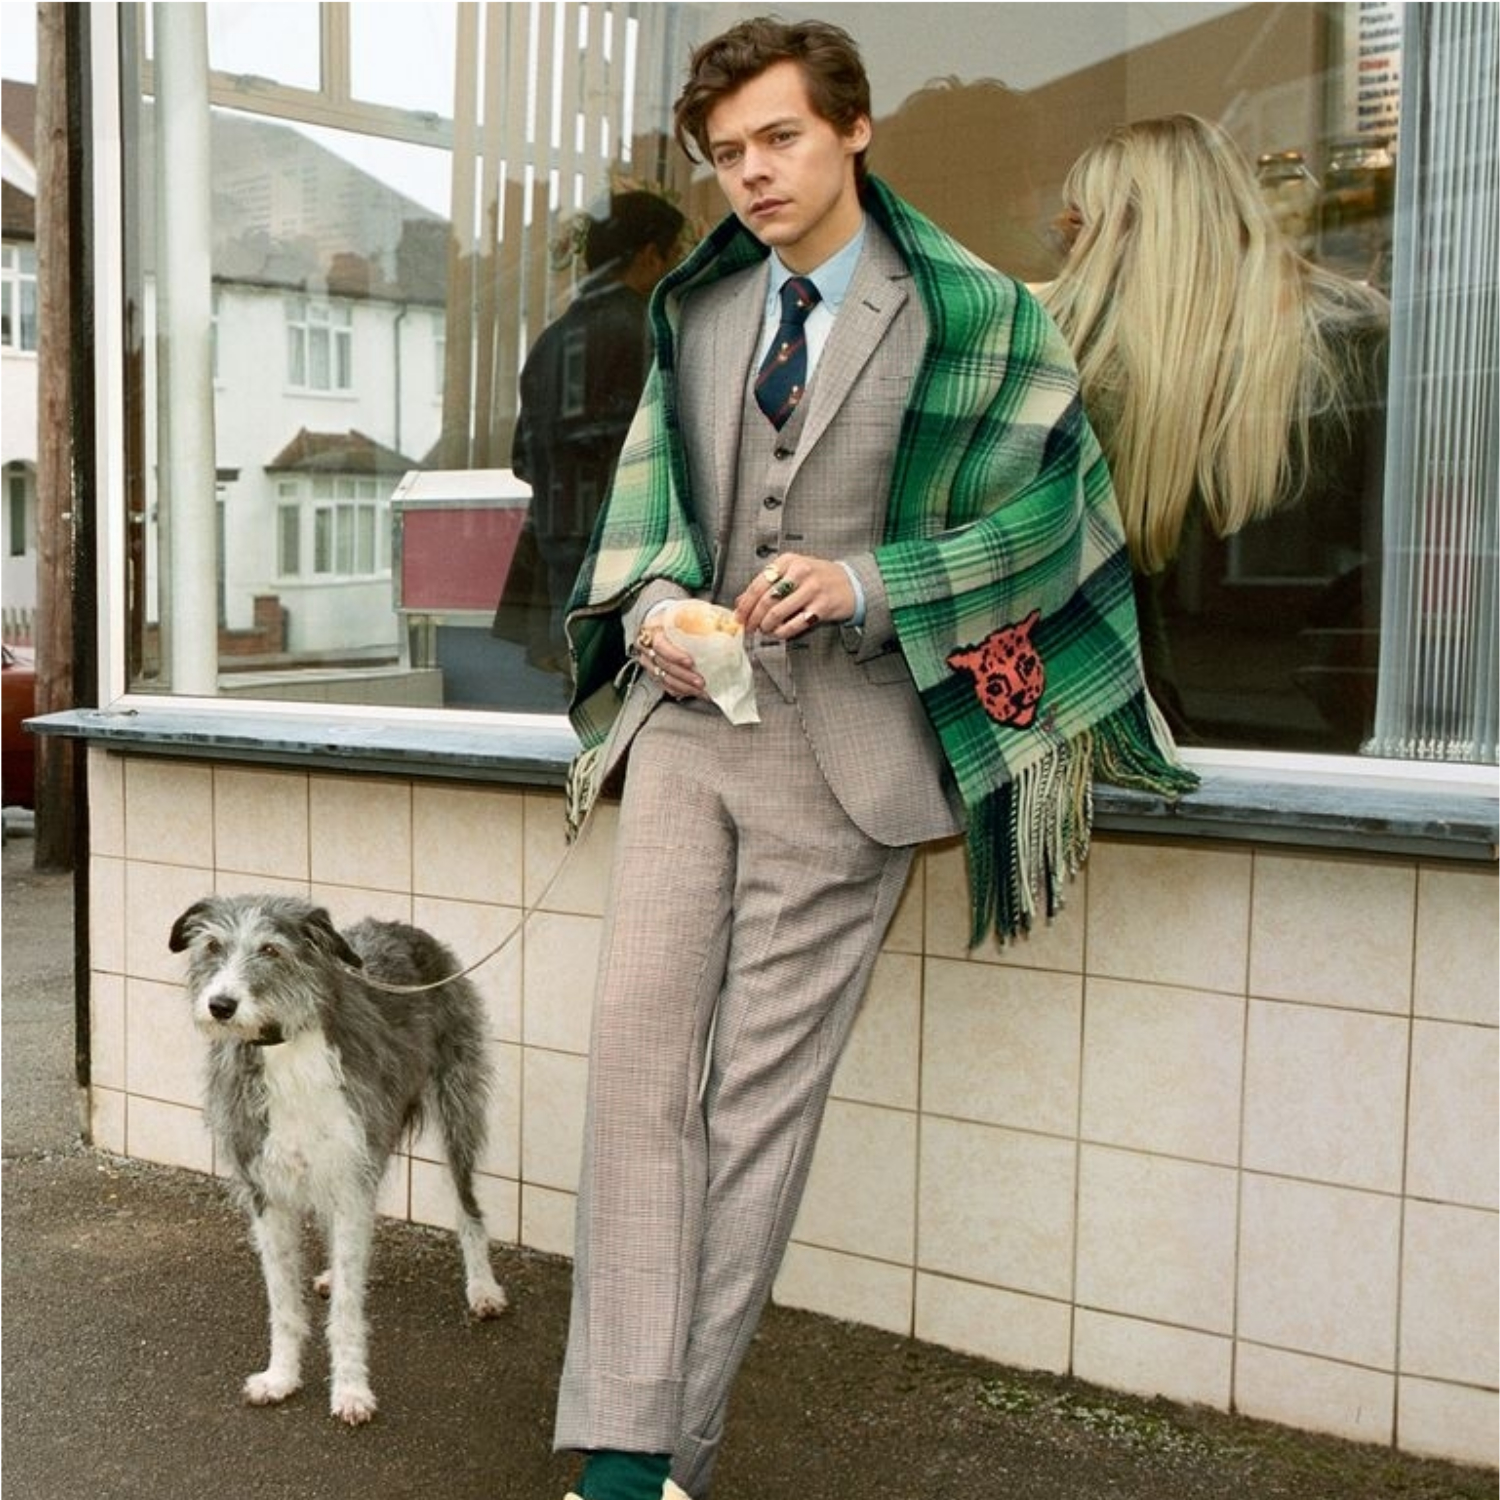 77de07e8d The Harry Styles Gucci Campaign We've All Been Waiting For Is Finally Here  - Harper's Bazaar Malaysia